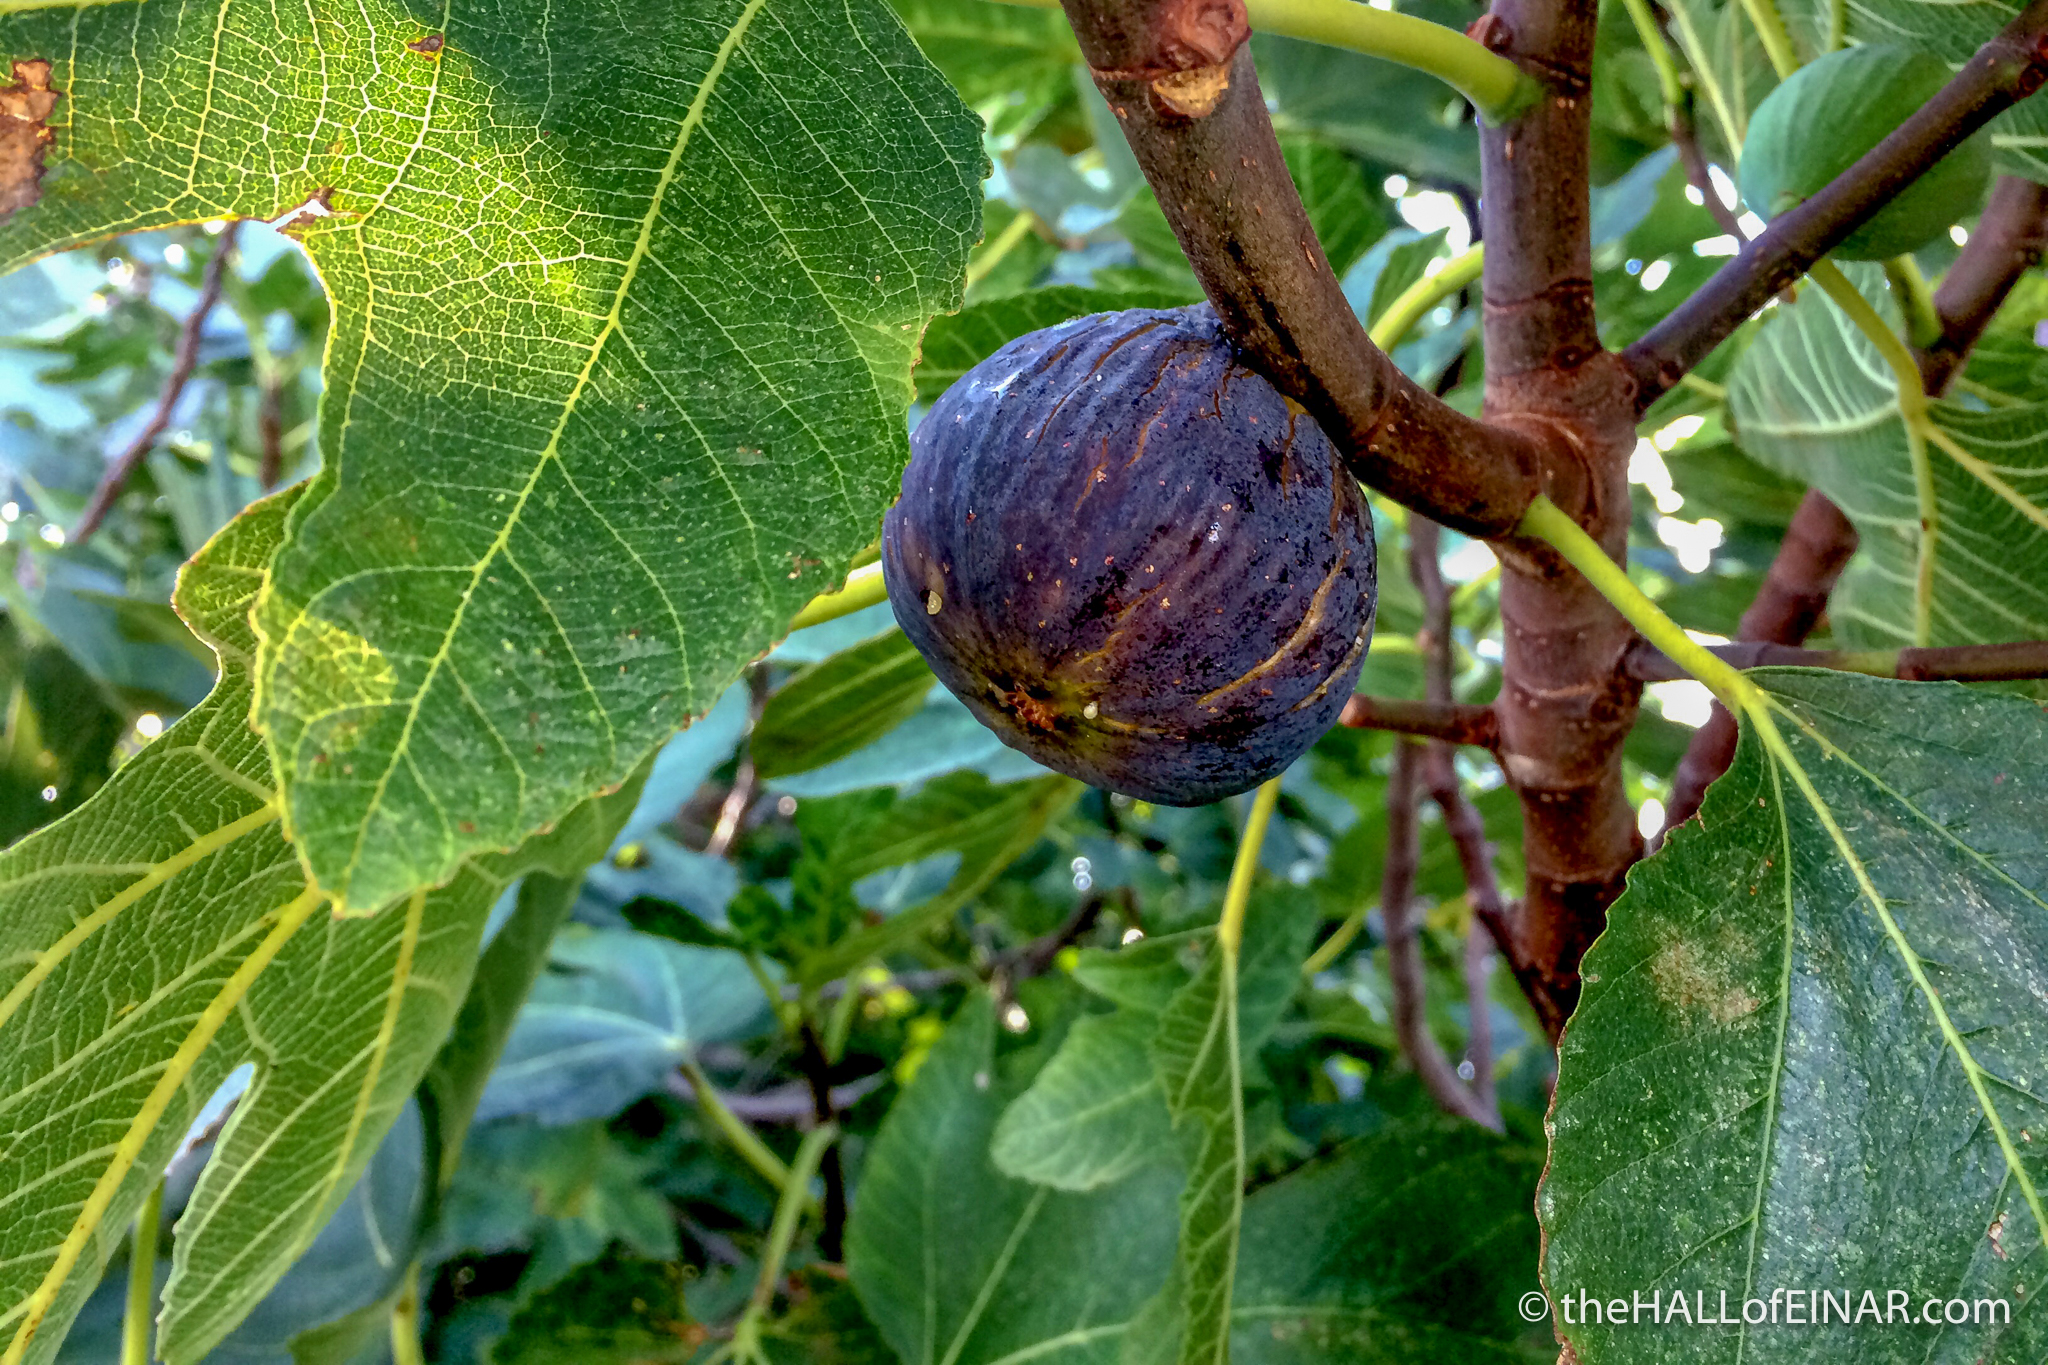 Figs - The Hall of Einar - photograph (c) David Bailey (not the)